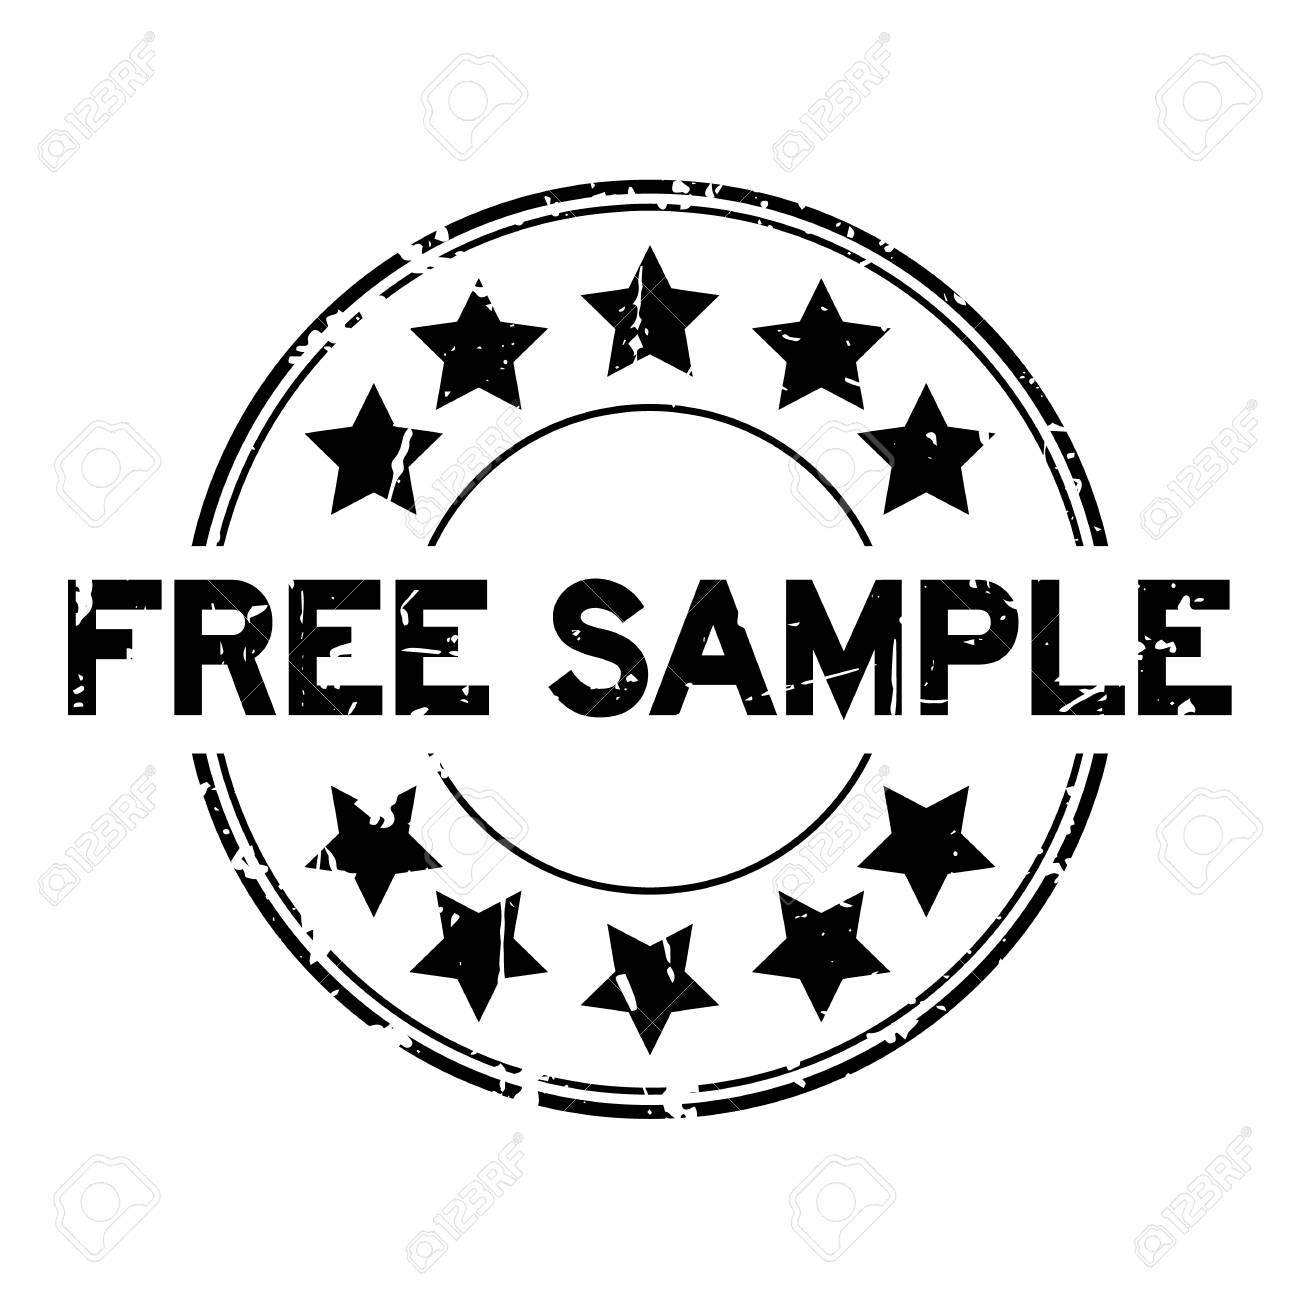 grunge black free sample with star icon round rubber seal stamp on white background stock vector